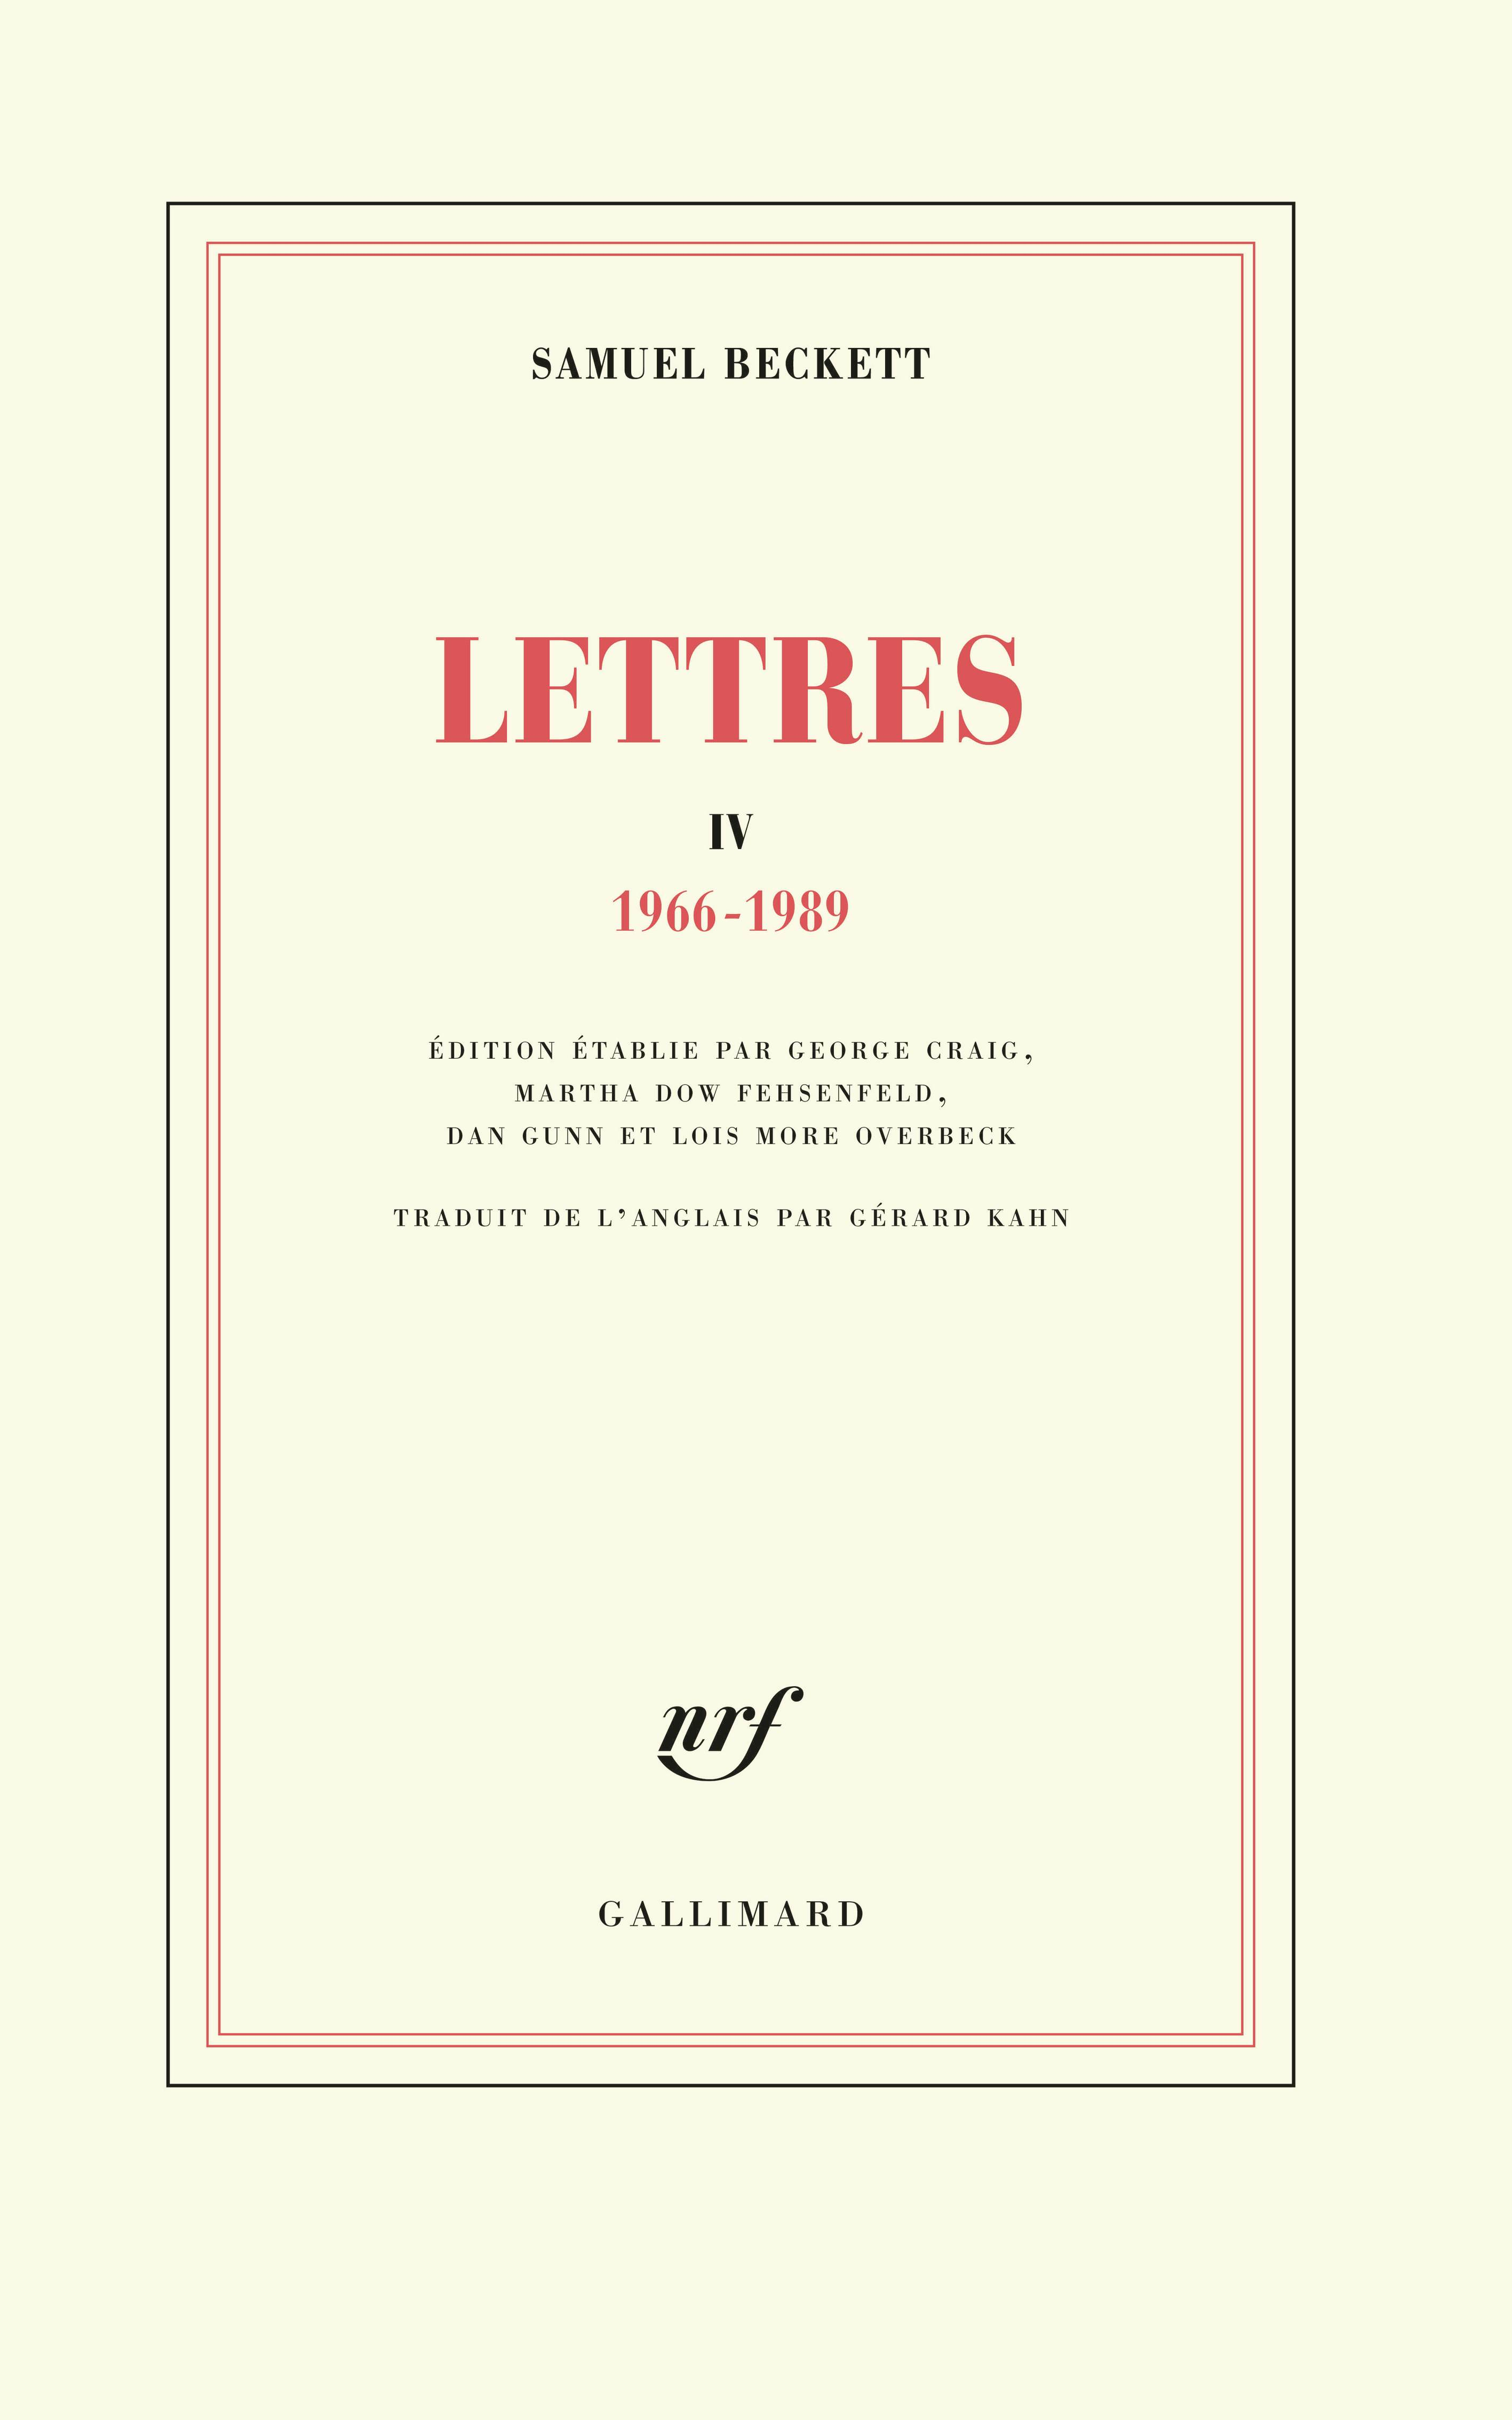 S. Beckett,  Lettres IV (1966-1989)